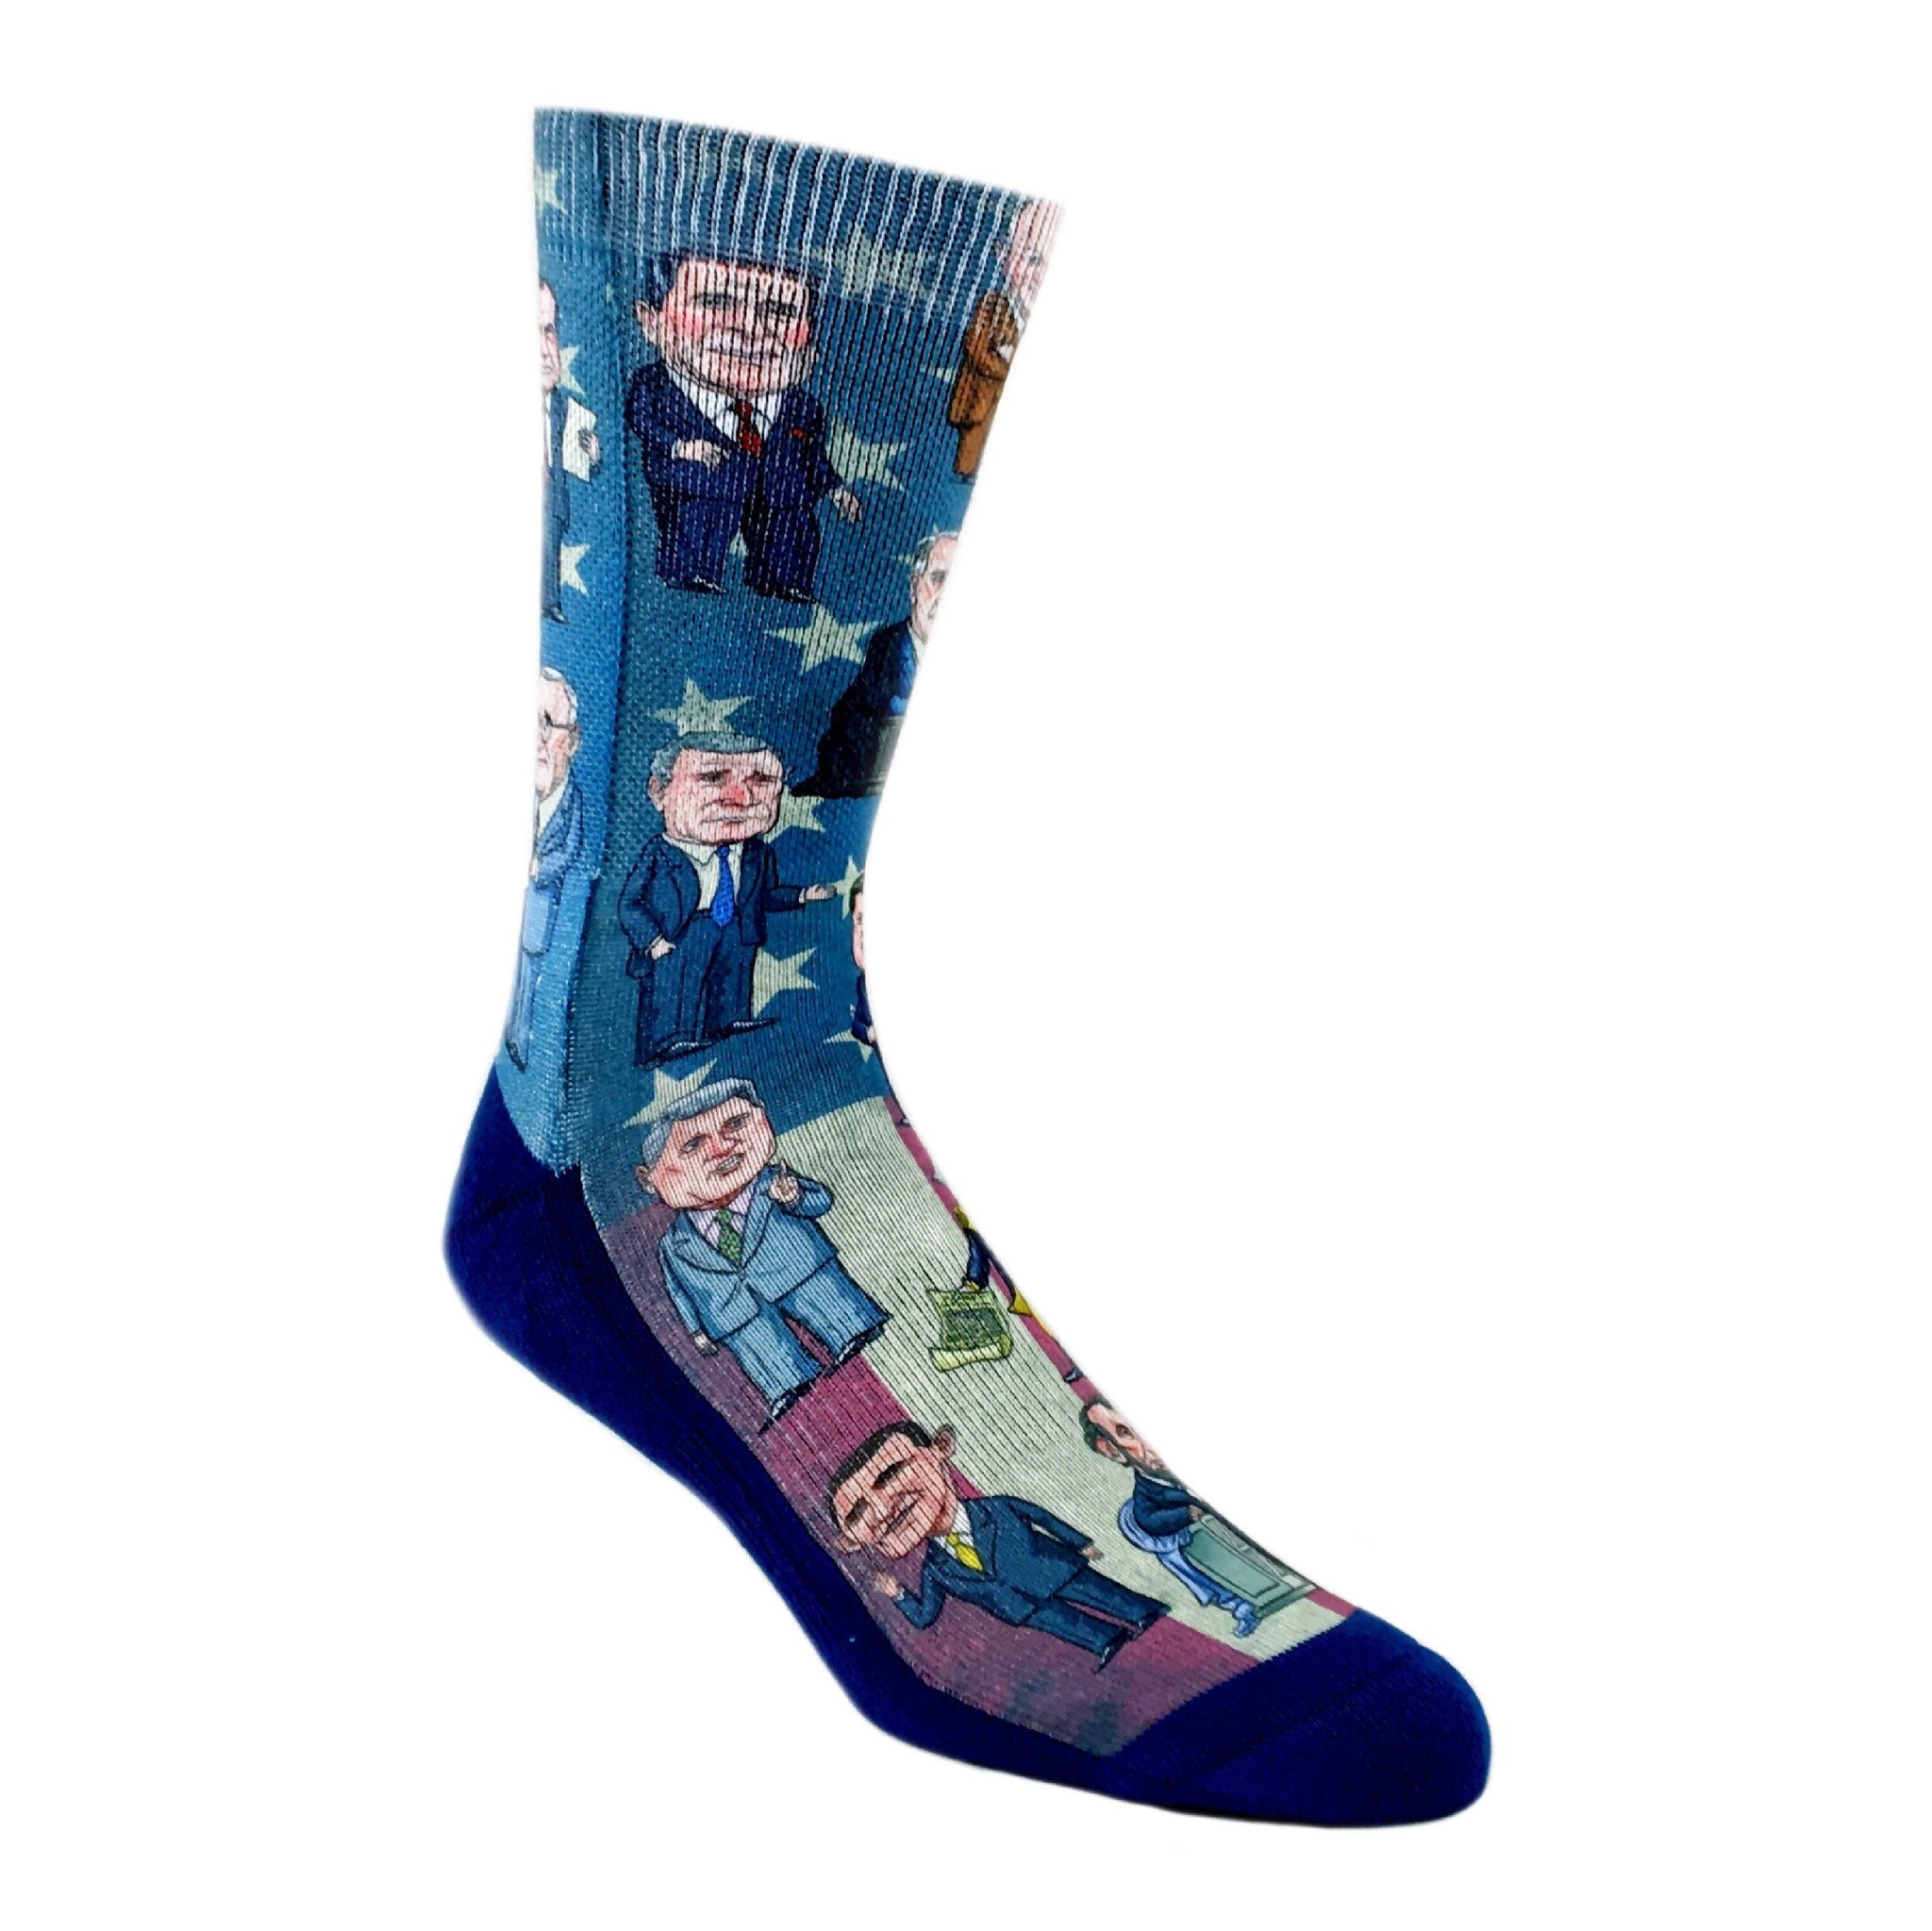 3e1900bb Past Presidents of The United States Printed Socks by Good Luck Sock